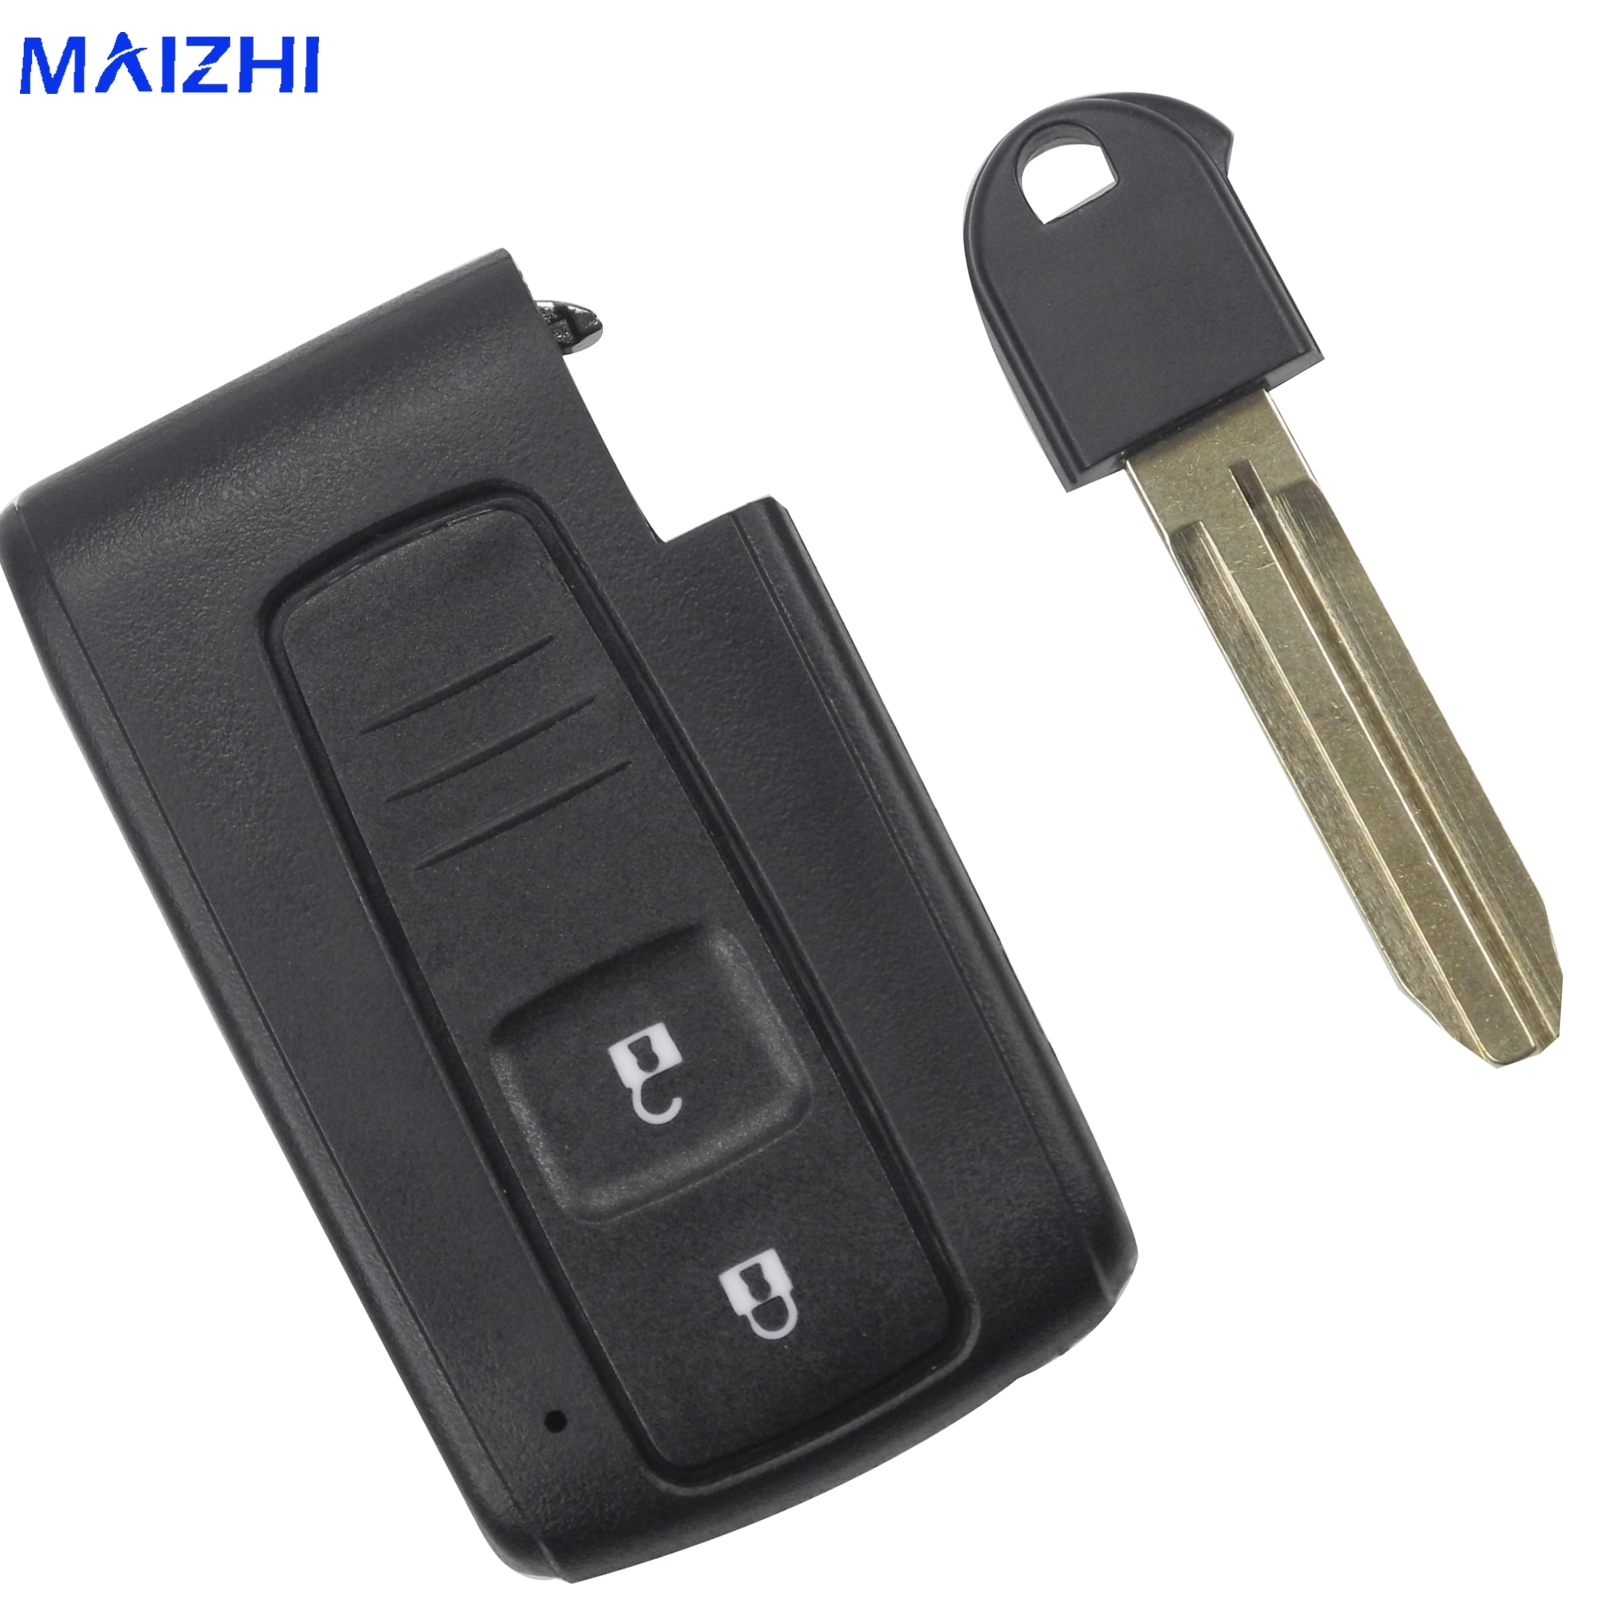 2 Buttons Remote Car Key Smart Card Shell for TOYOTA PRIUS COROLLA